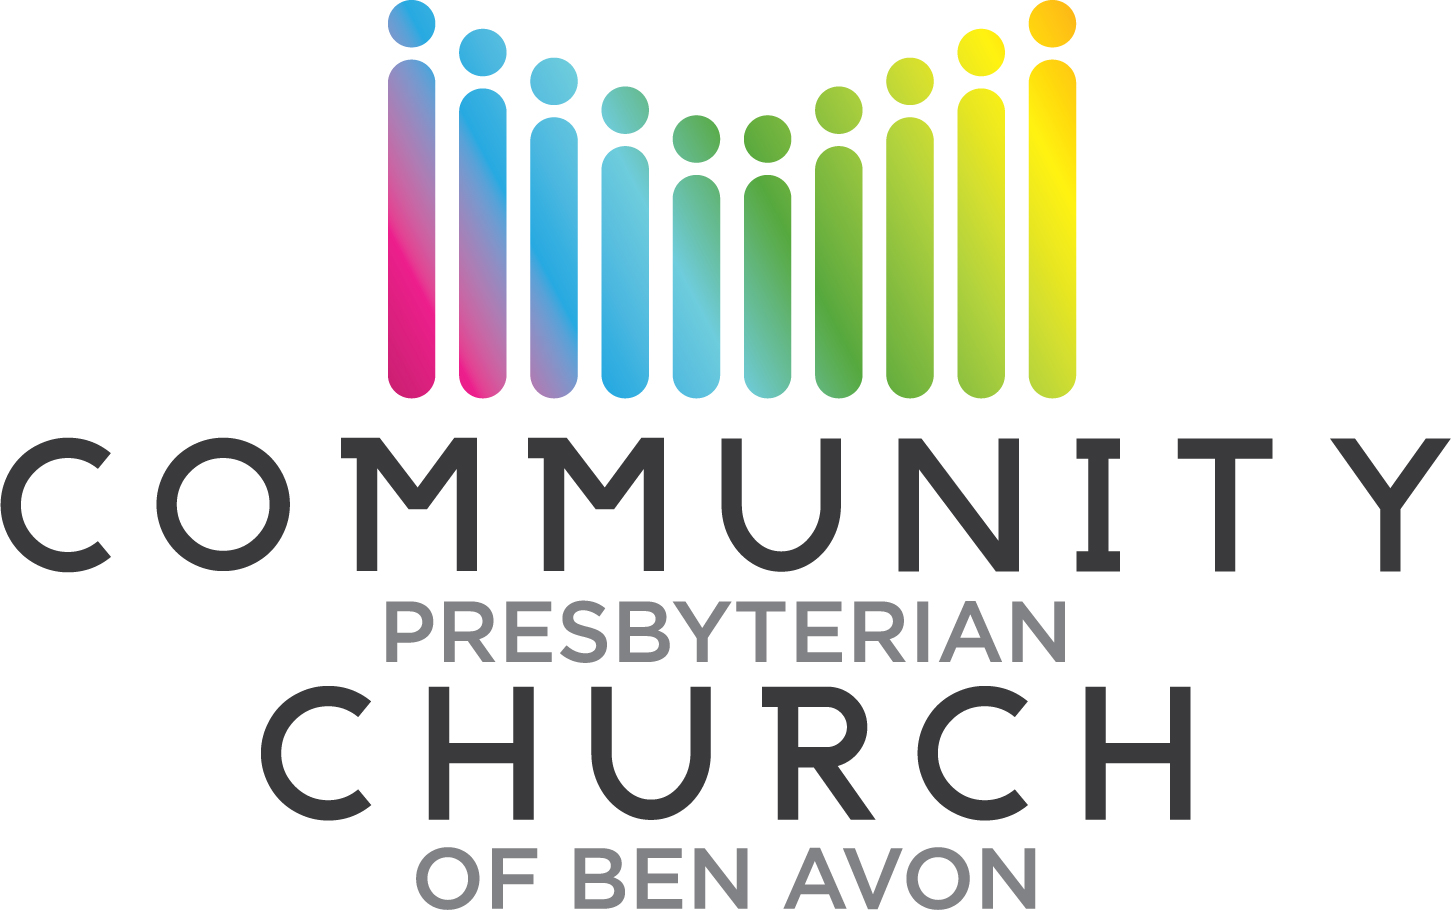 COMMUNITY PRESBYTERIAN CHURCH OF BEN AVON